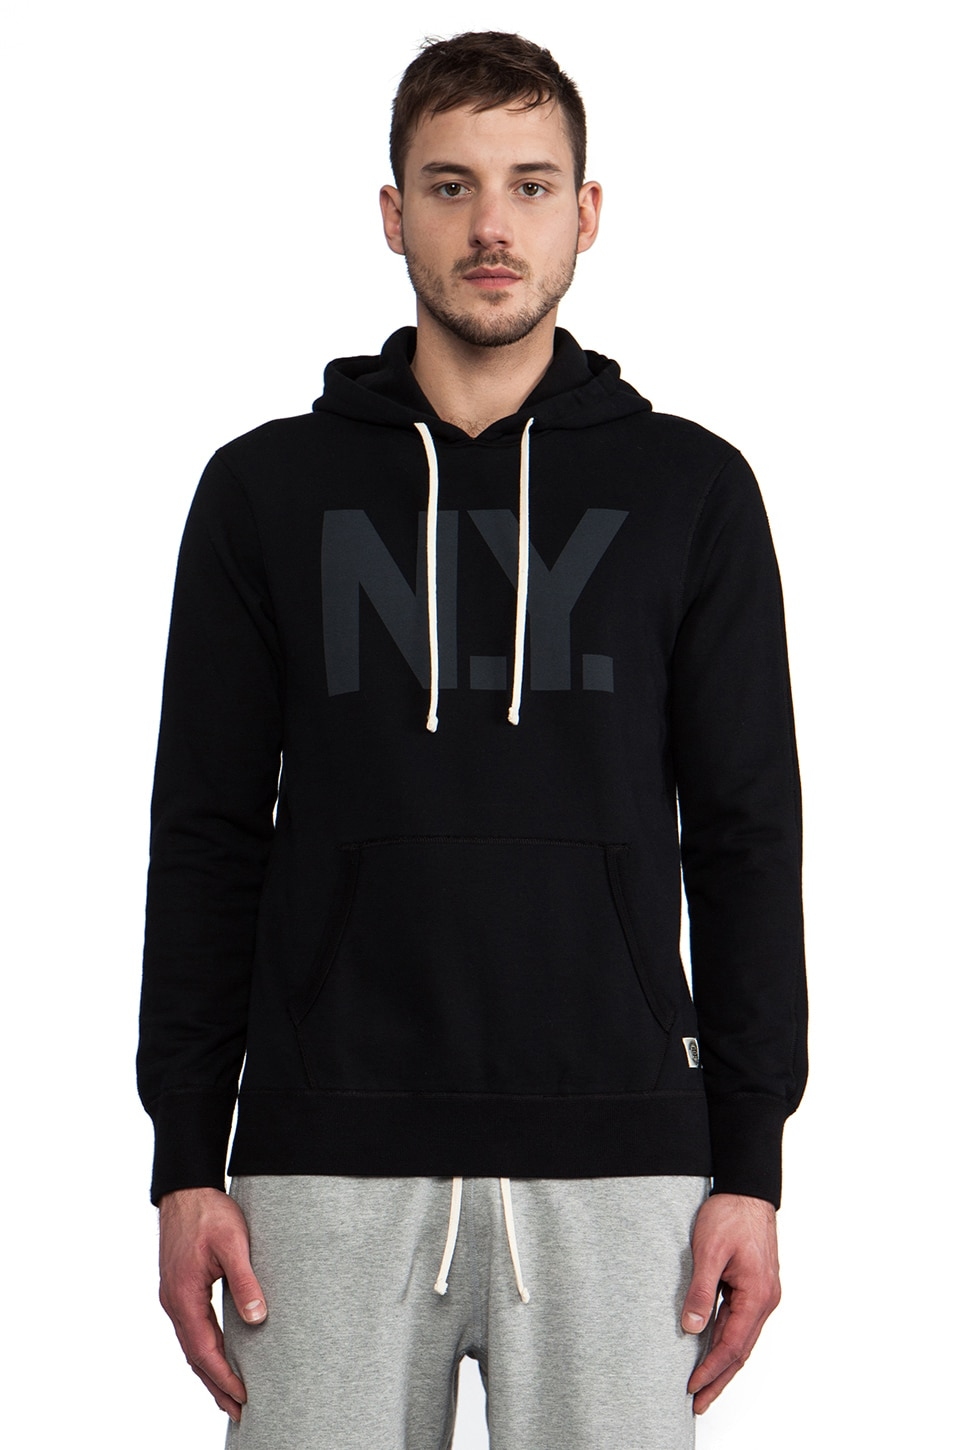 Reigning Champ x Everlast Sporting Goods Pullover Hoodie in Black